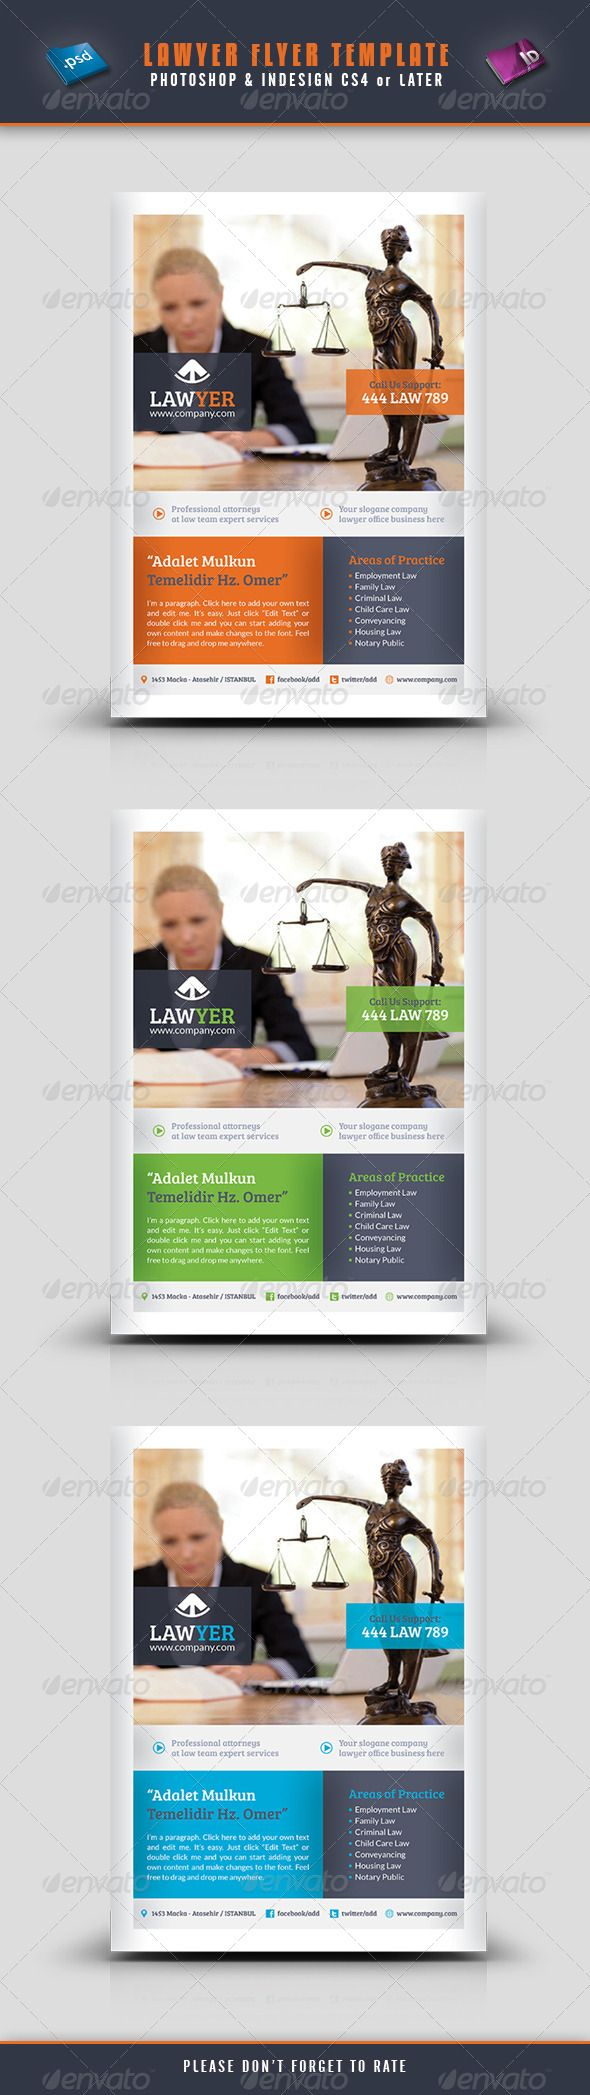 Lawyer Flyer Template  #GraphicRiver        Lawyer Flyer Template  Fully layered INDD   Fully layered PSD   300 Dpi, CMYK   IDML format open Indesign CS4 or later  Completely editable, print ready  Text/Font or Color can be altered as needed  All Image are in vector format, so can customise easily  Photos are not included in the file  Font File: Lato Font:  .fontsquirrel /fonts/lato Bree-serif:  .fontsquirrel /font